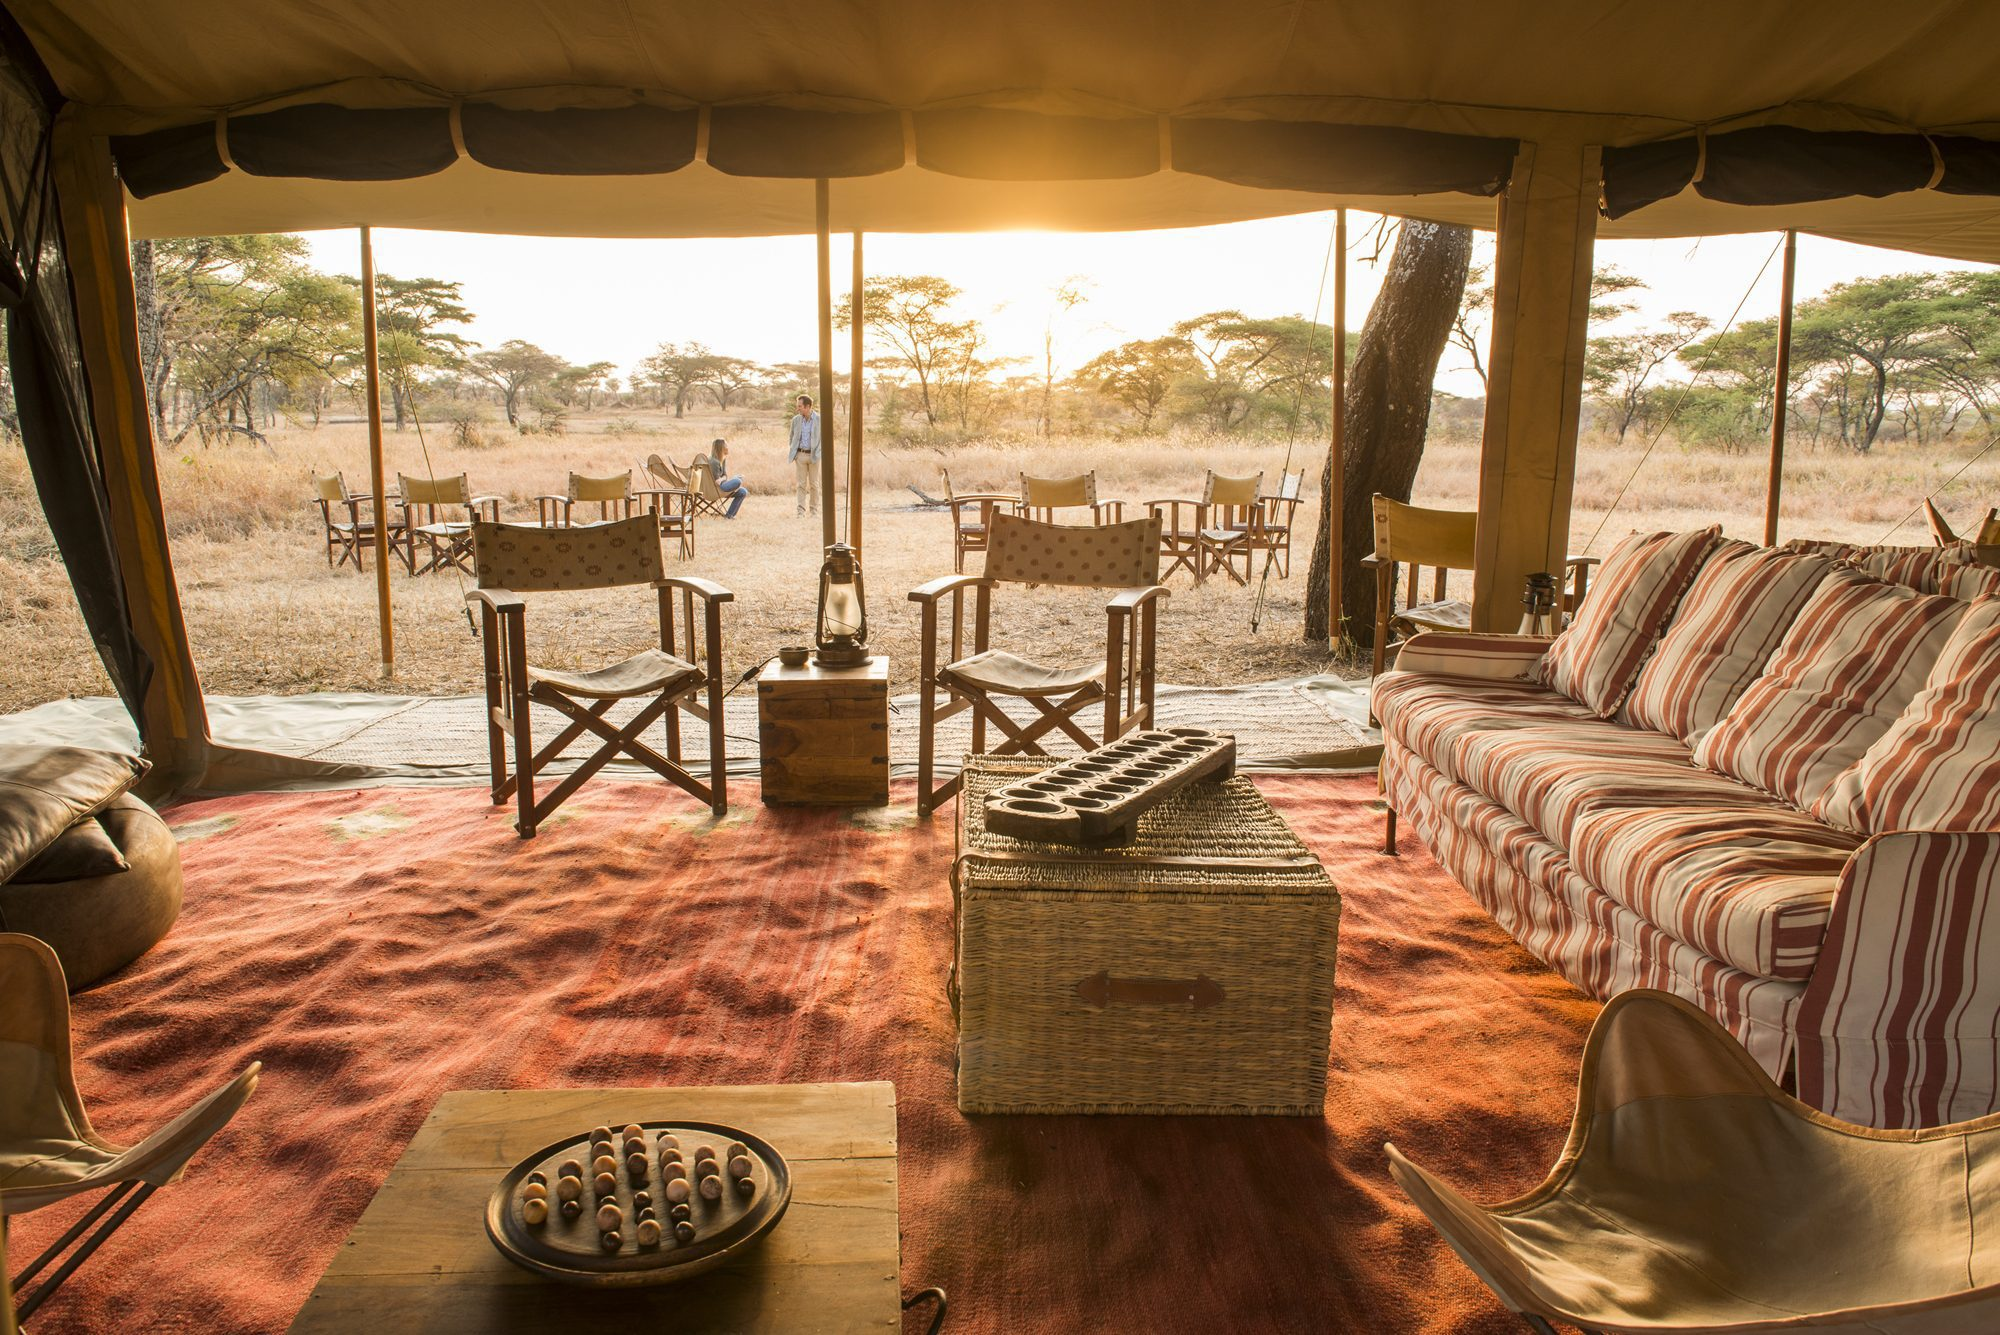 view from the inside of a tented safari camp at sunset